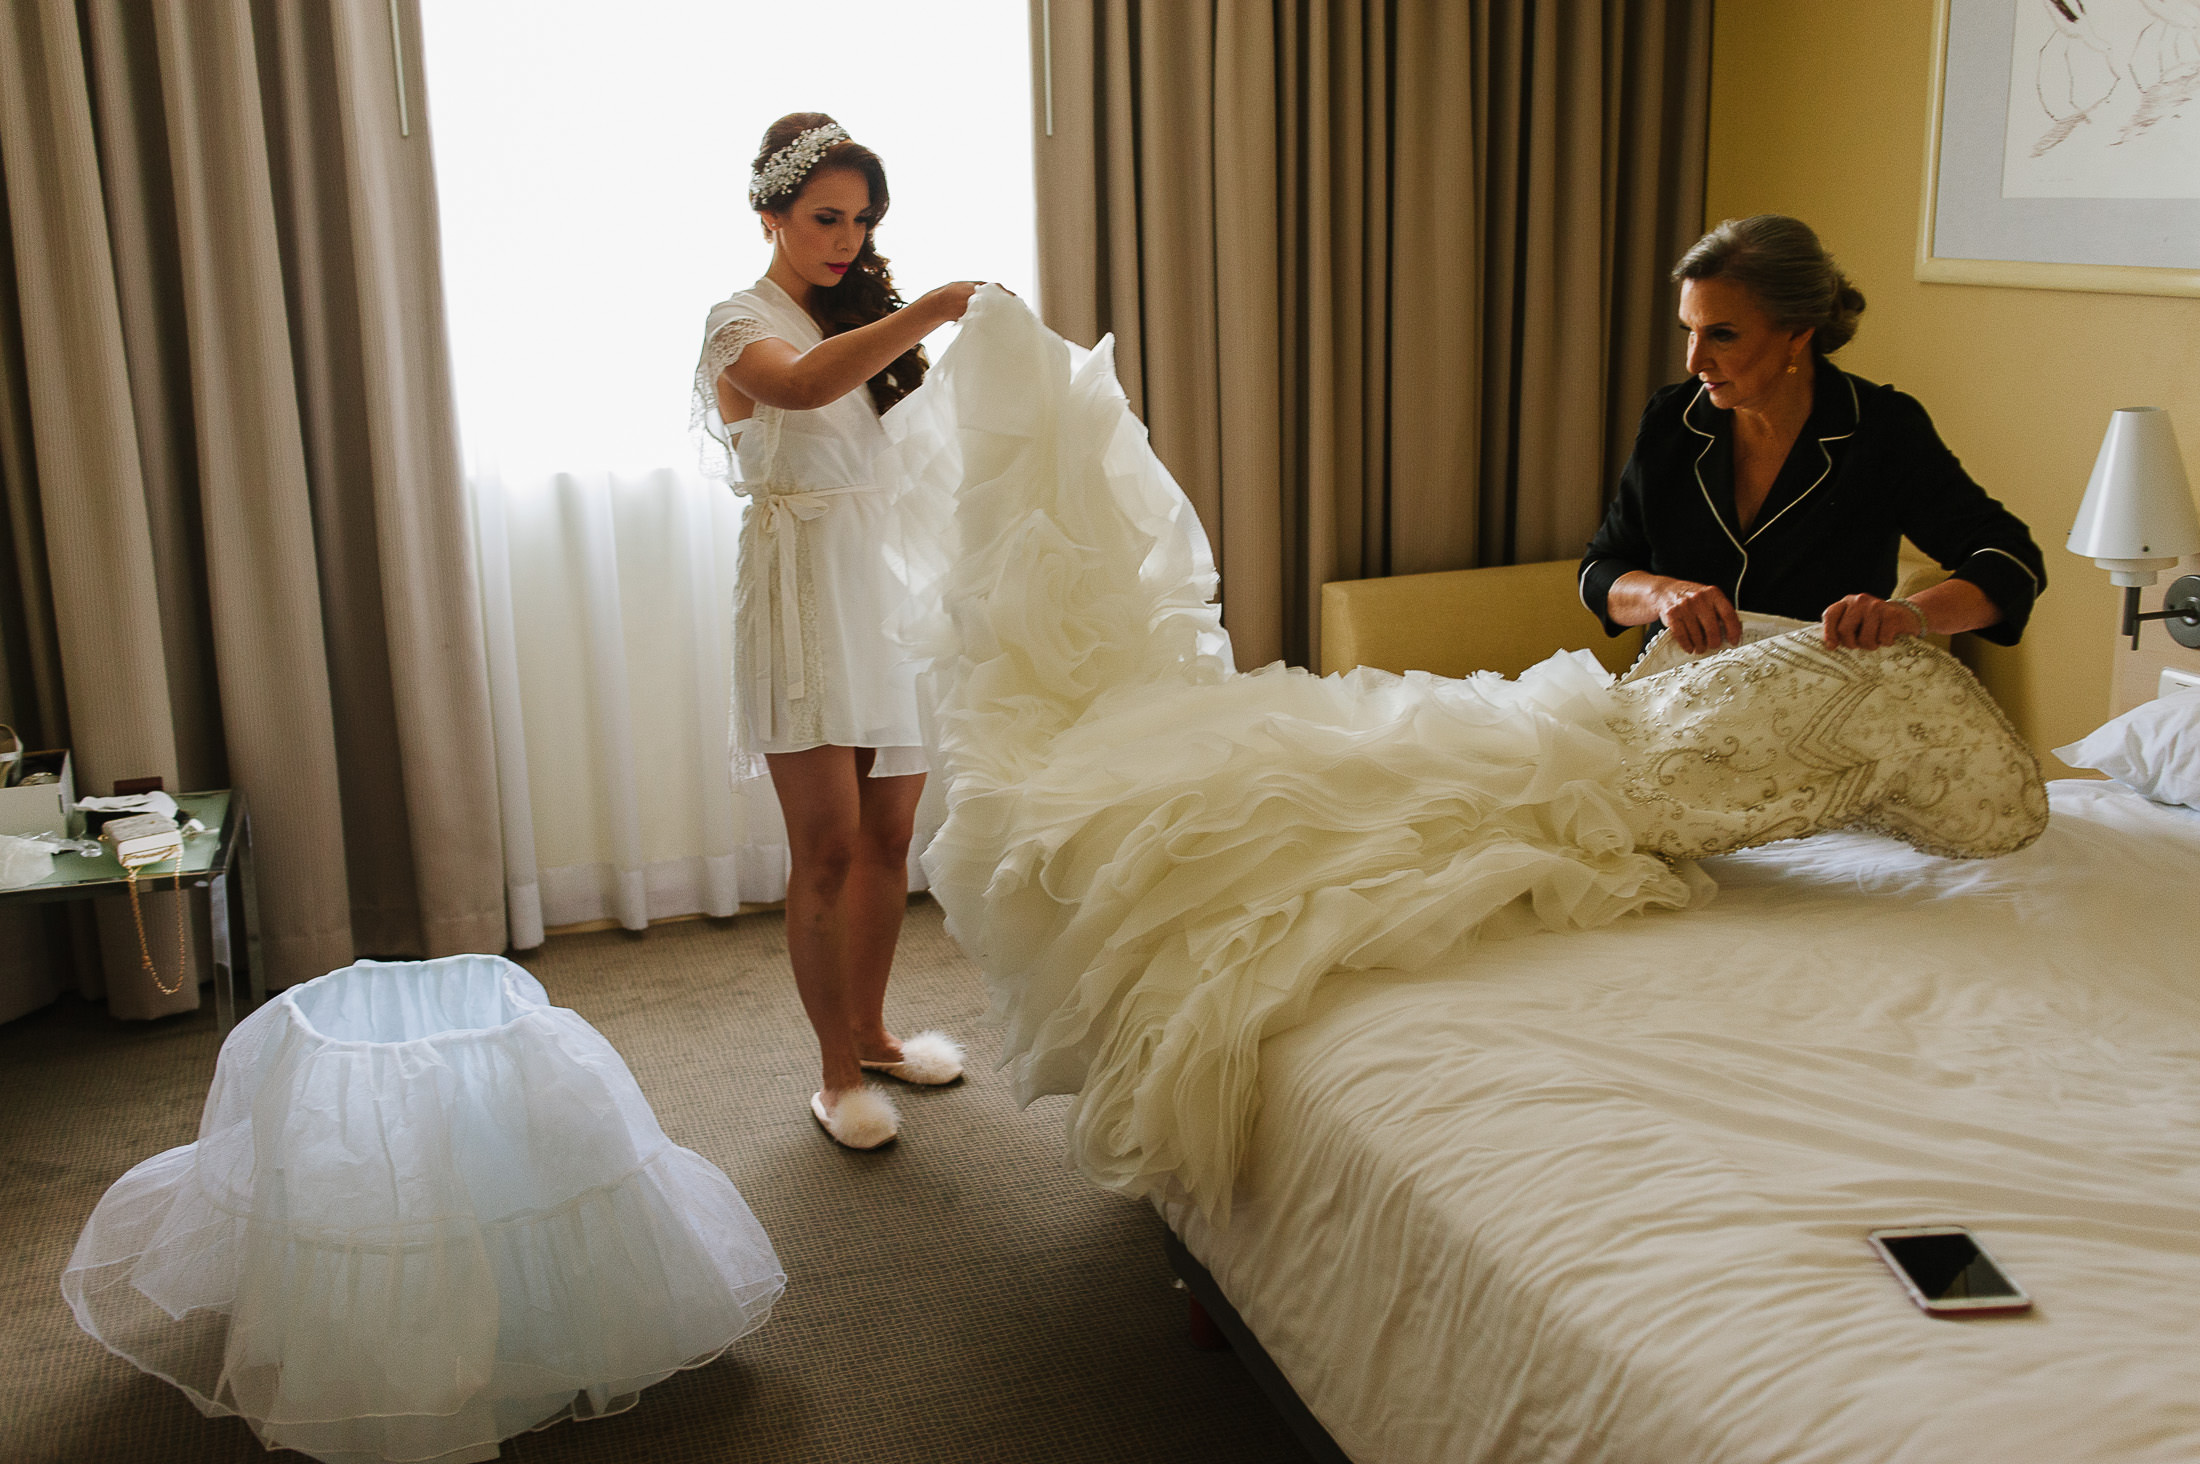 Bride getting ready with her mom in hotel room